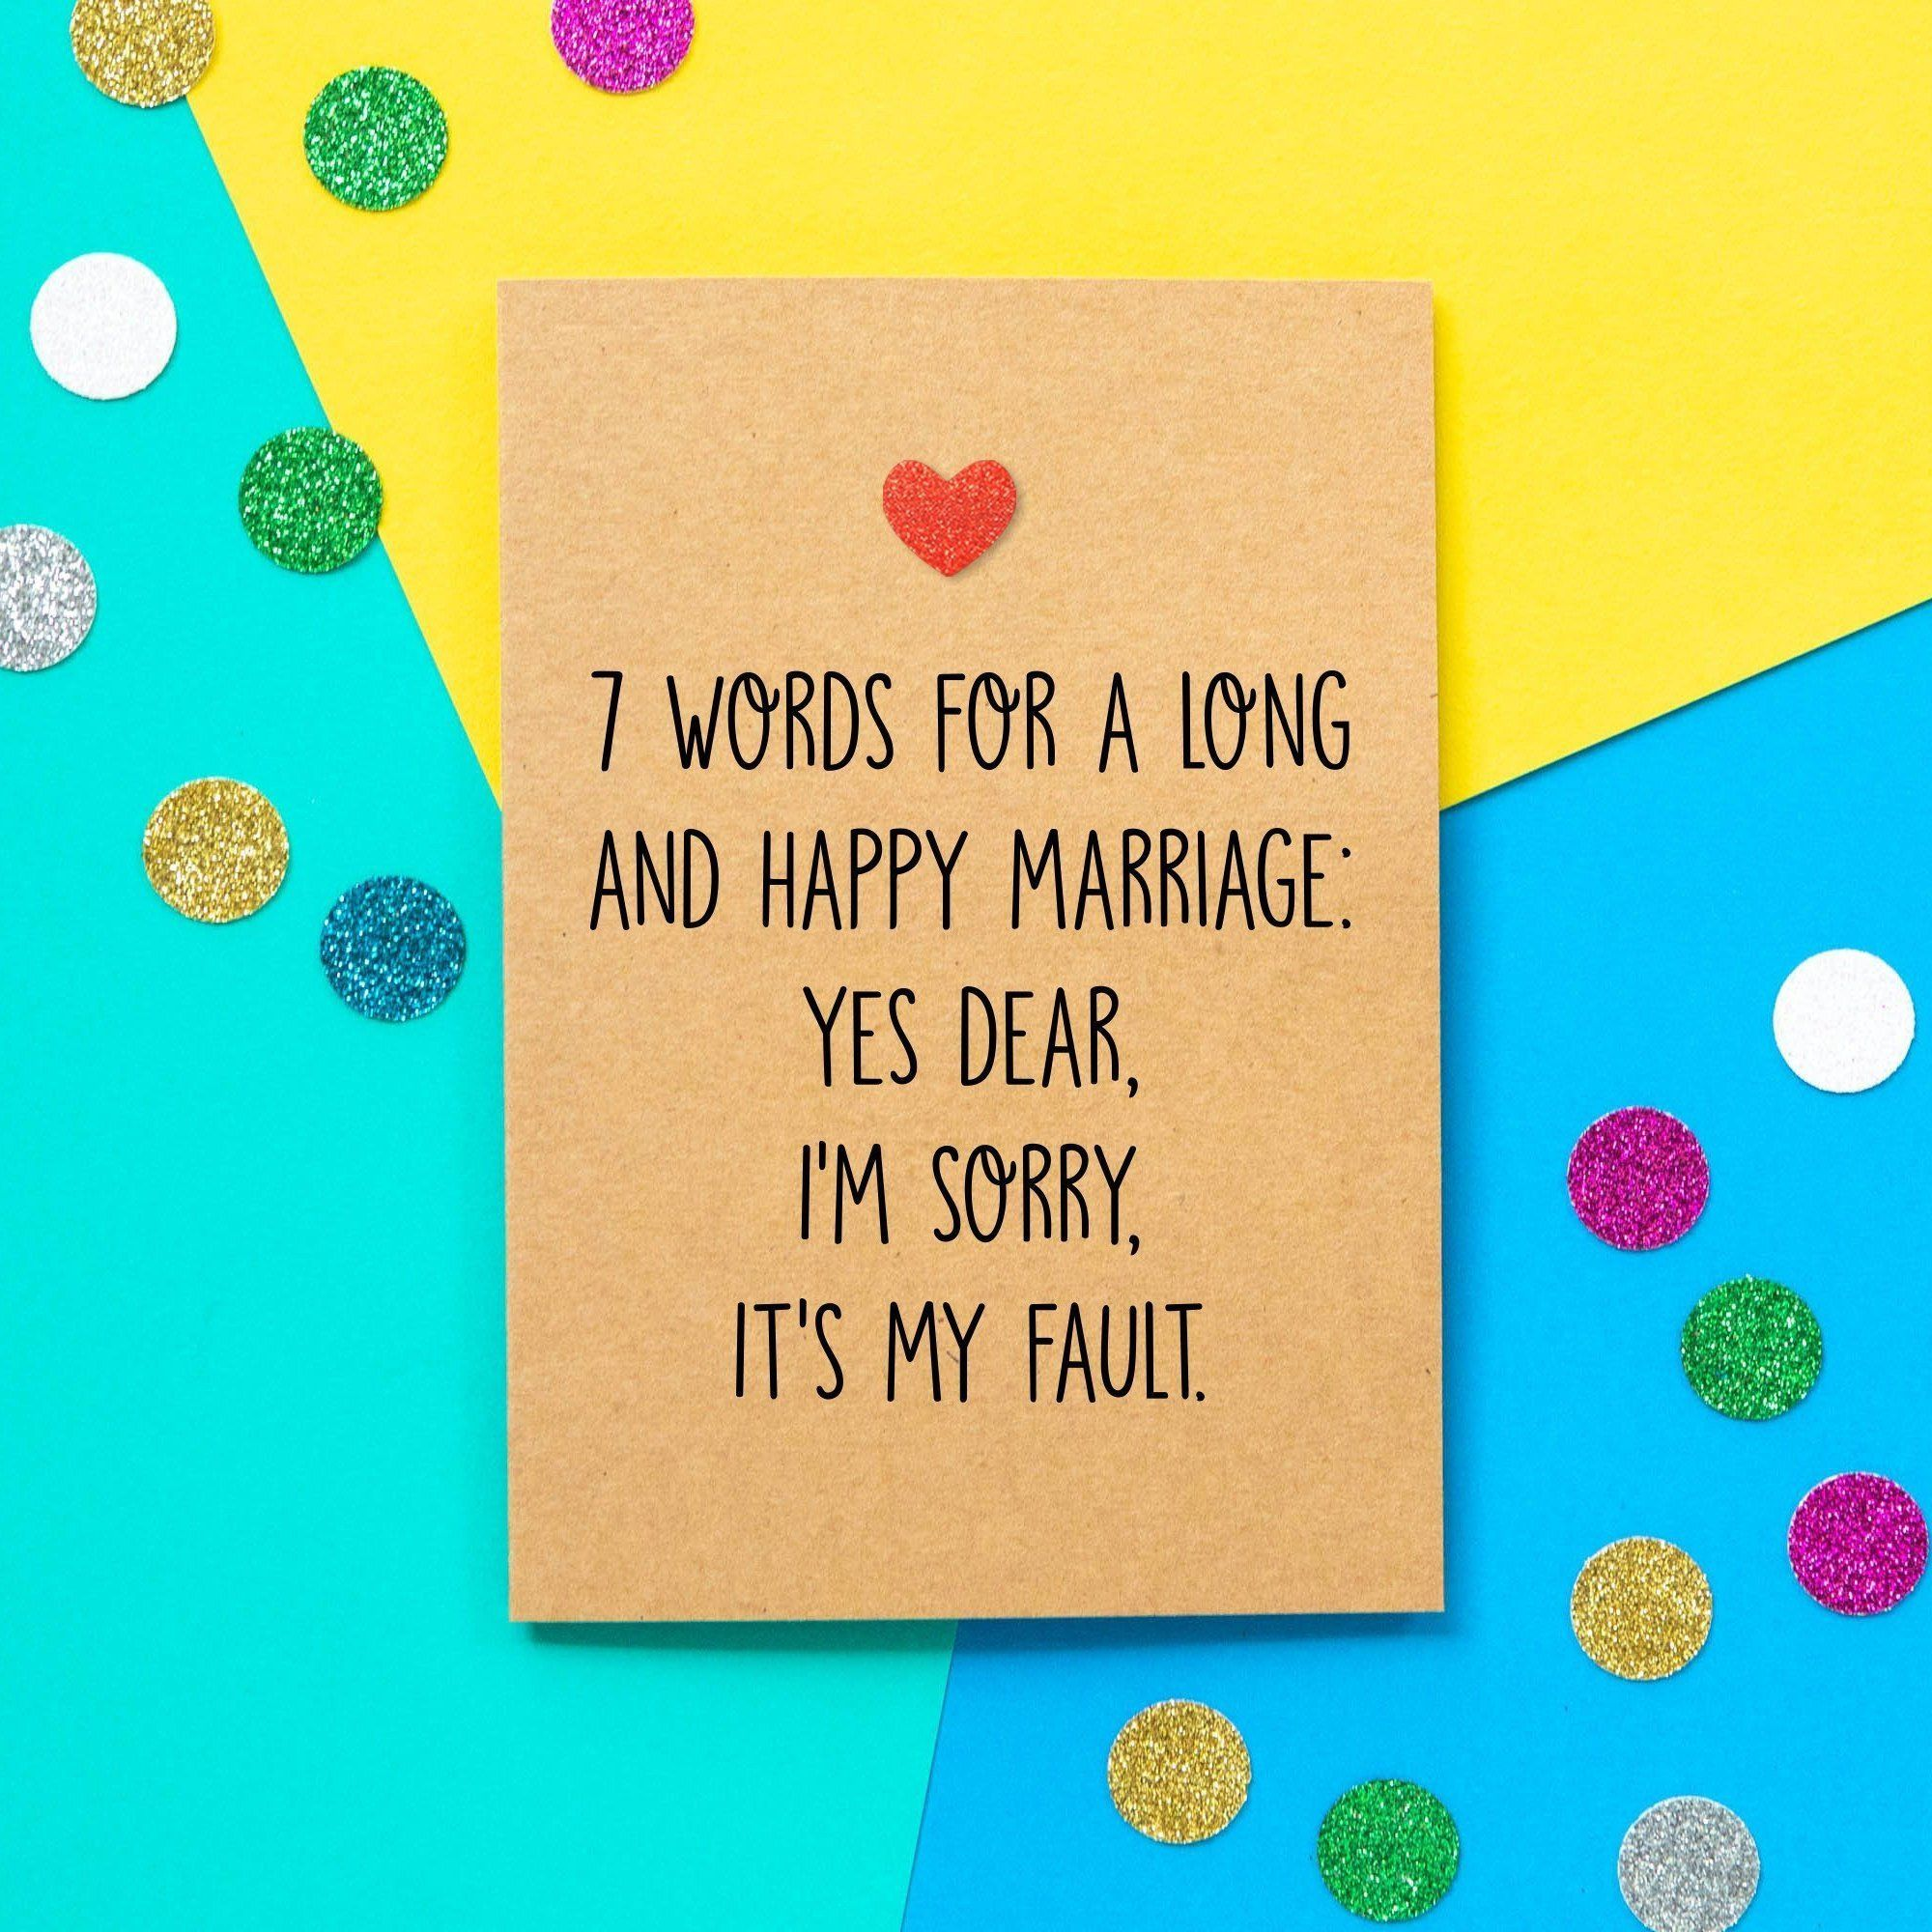 Funny wedding card 7 words for a long and happy marriage